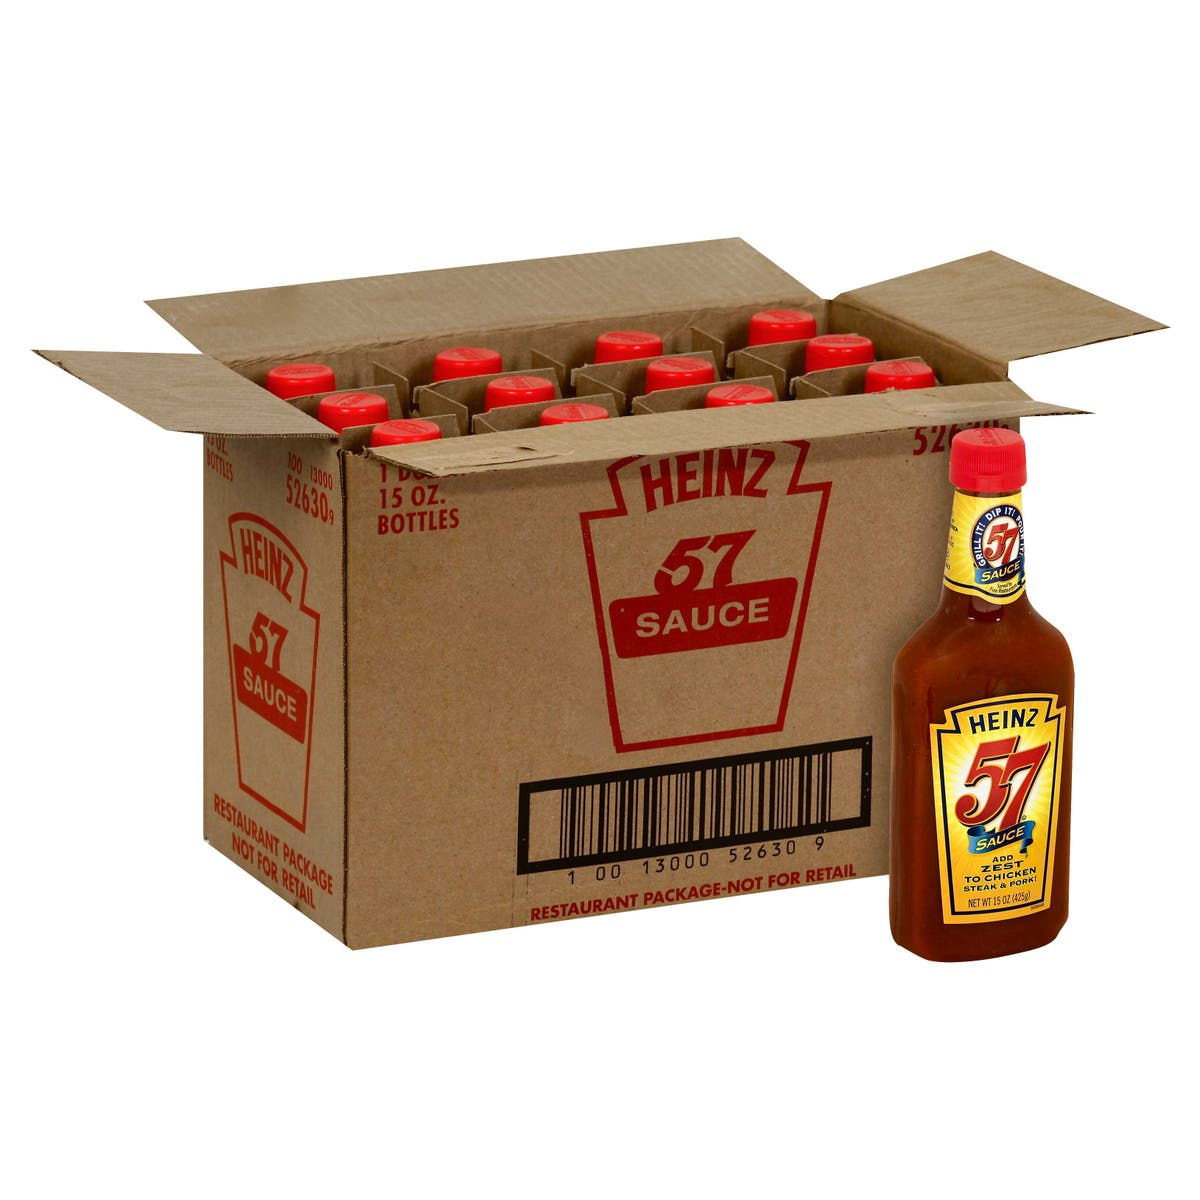 Heinz 57 Sauce Case Foodservicedirect